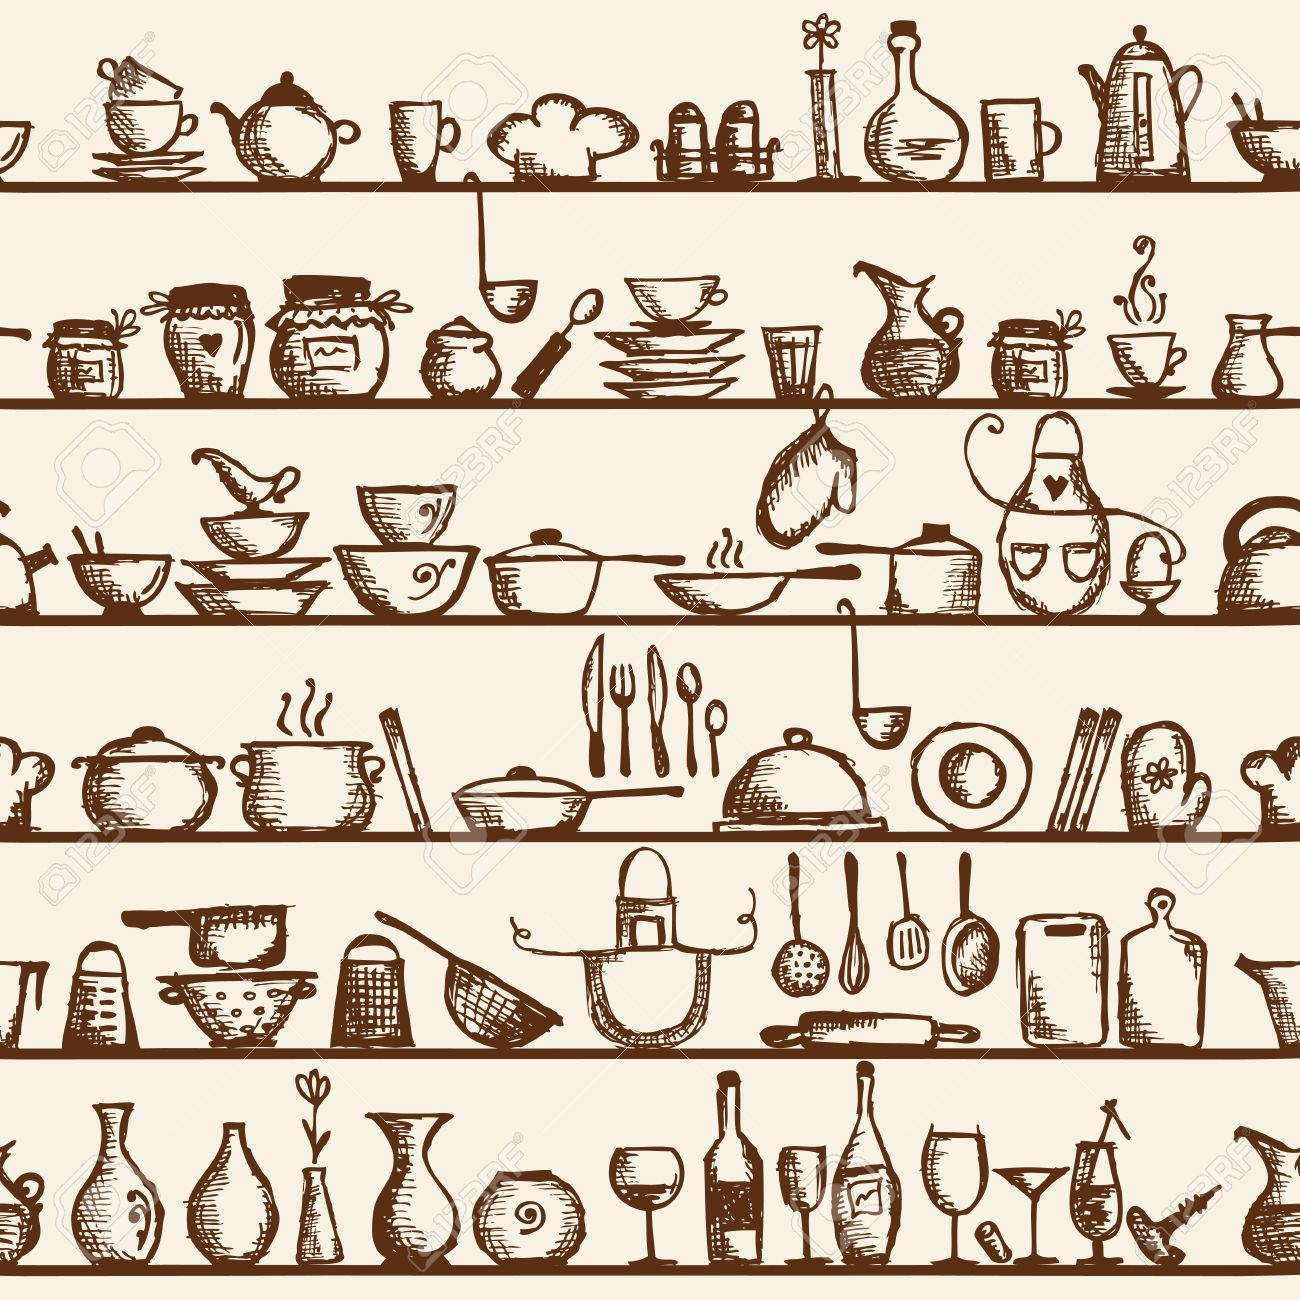 Kitchen Utensils Wallpaper kitchen utensils on shelves, sketch drawing seamless pattern